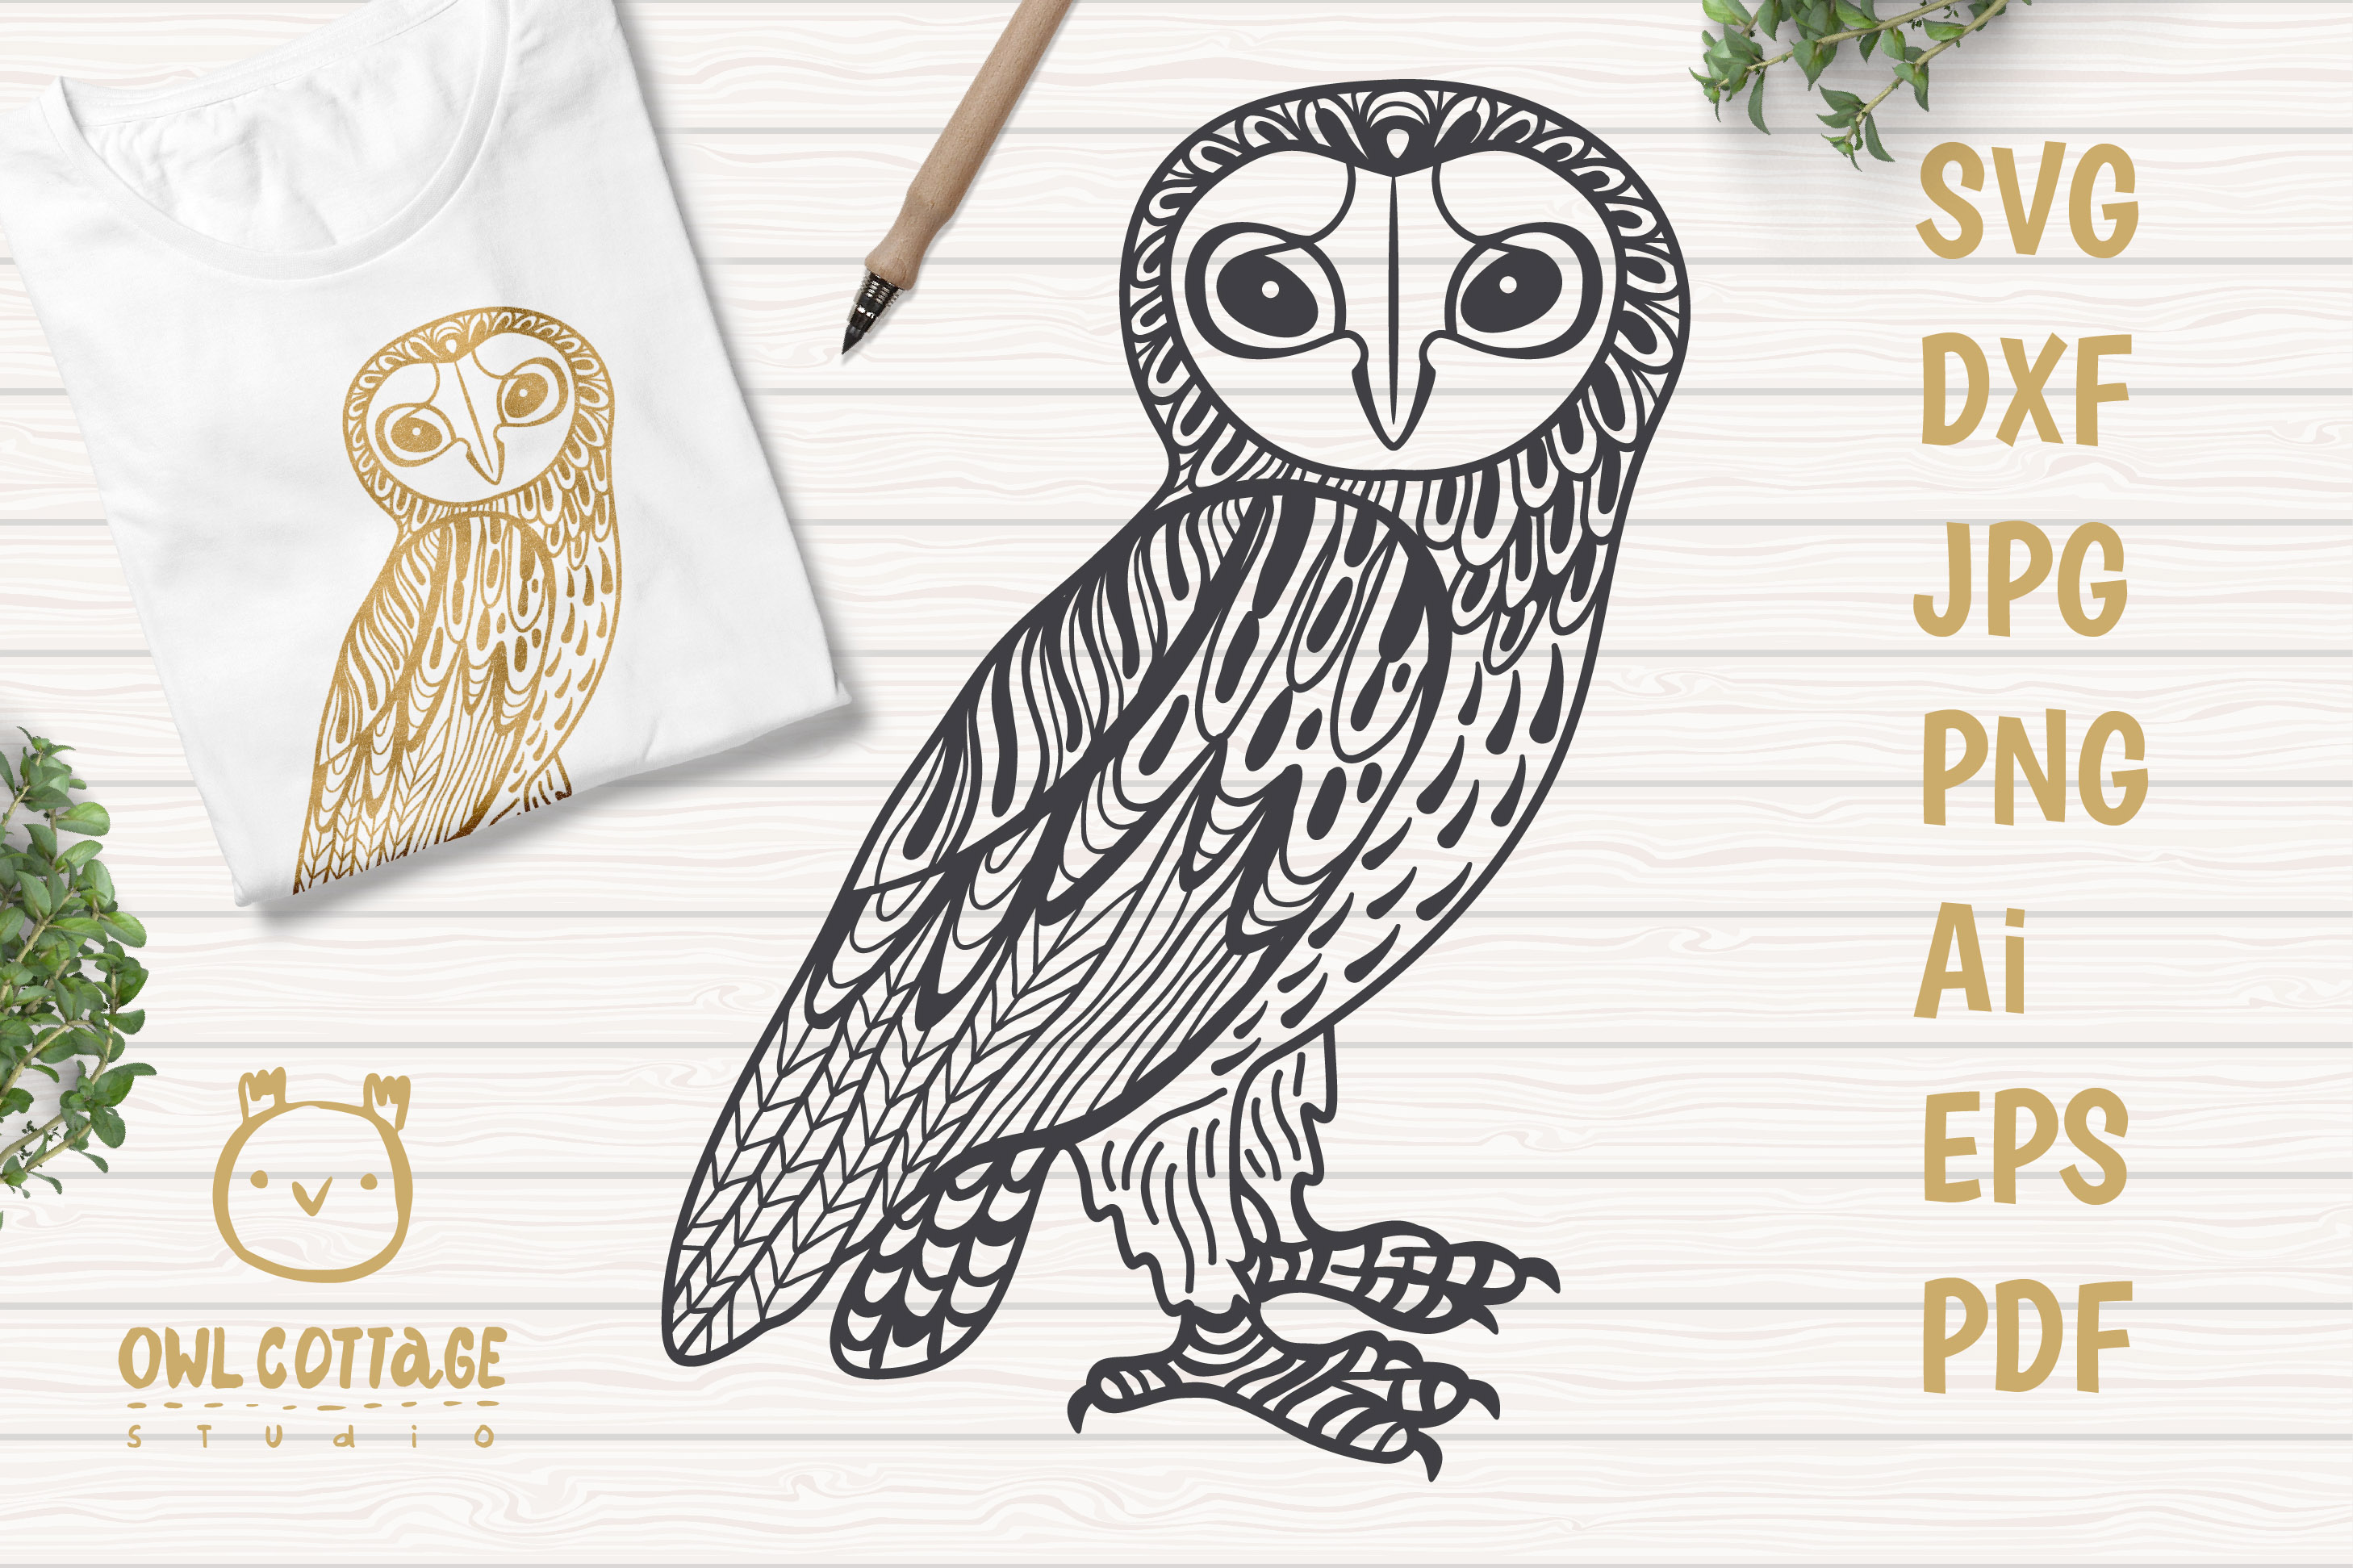 Barn Owl SVG, Forest Bird Decor Cut File example image 1